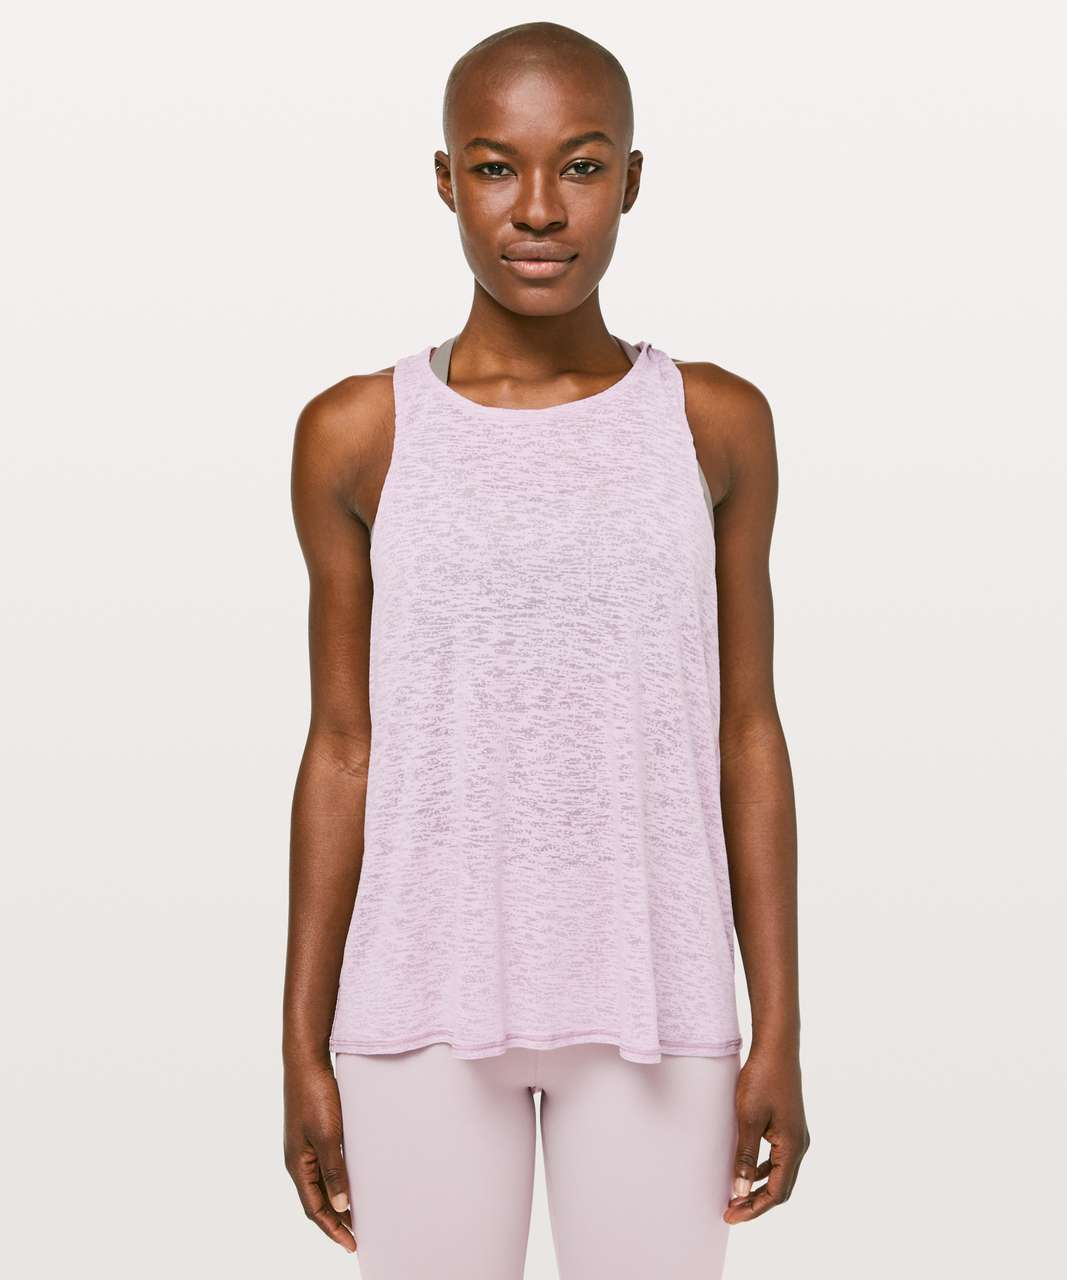 Lululemon Circle Back To It Tank - Antoinette